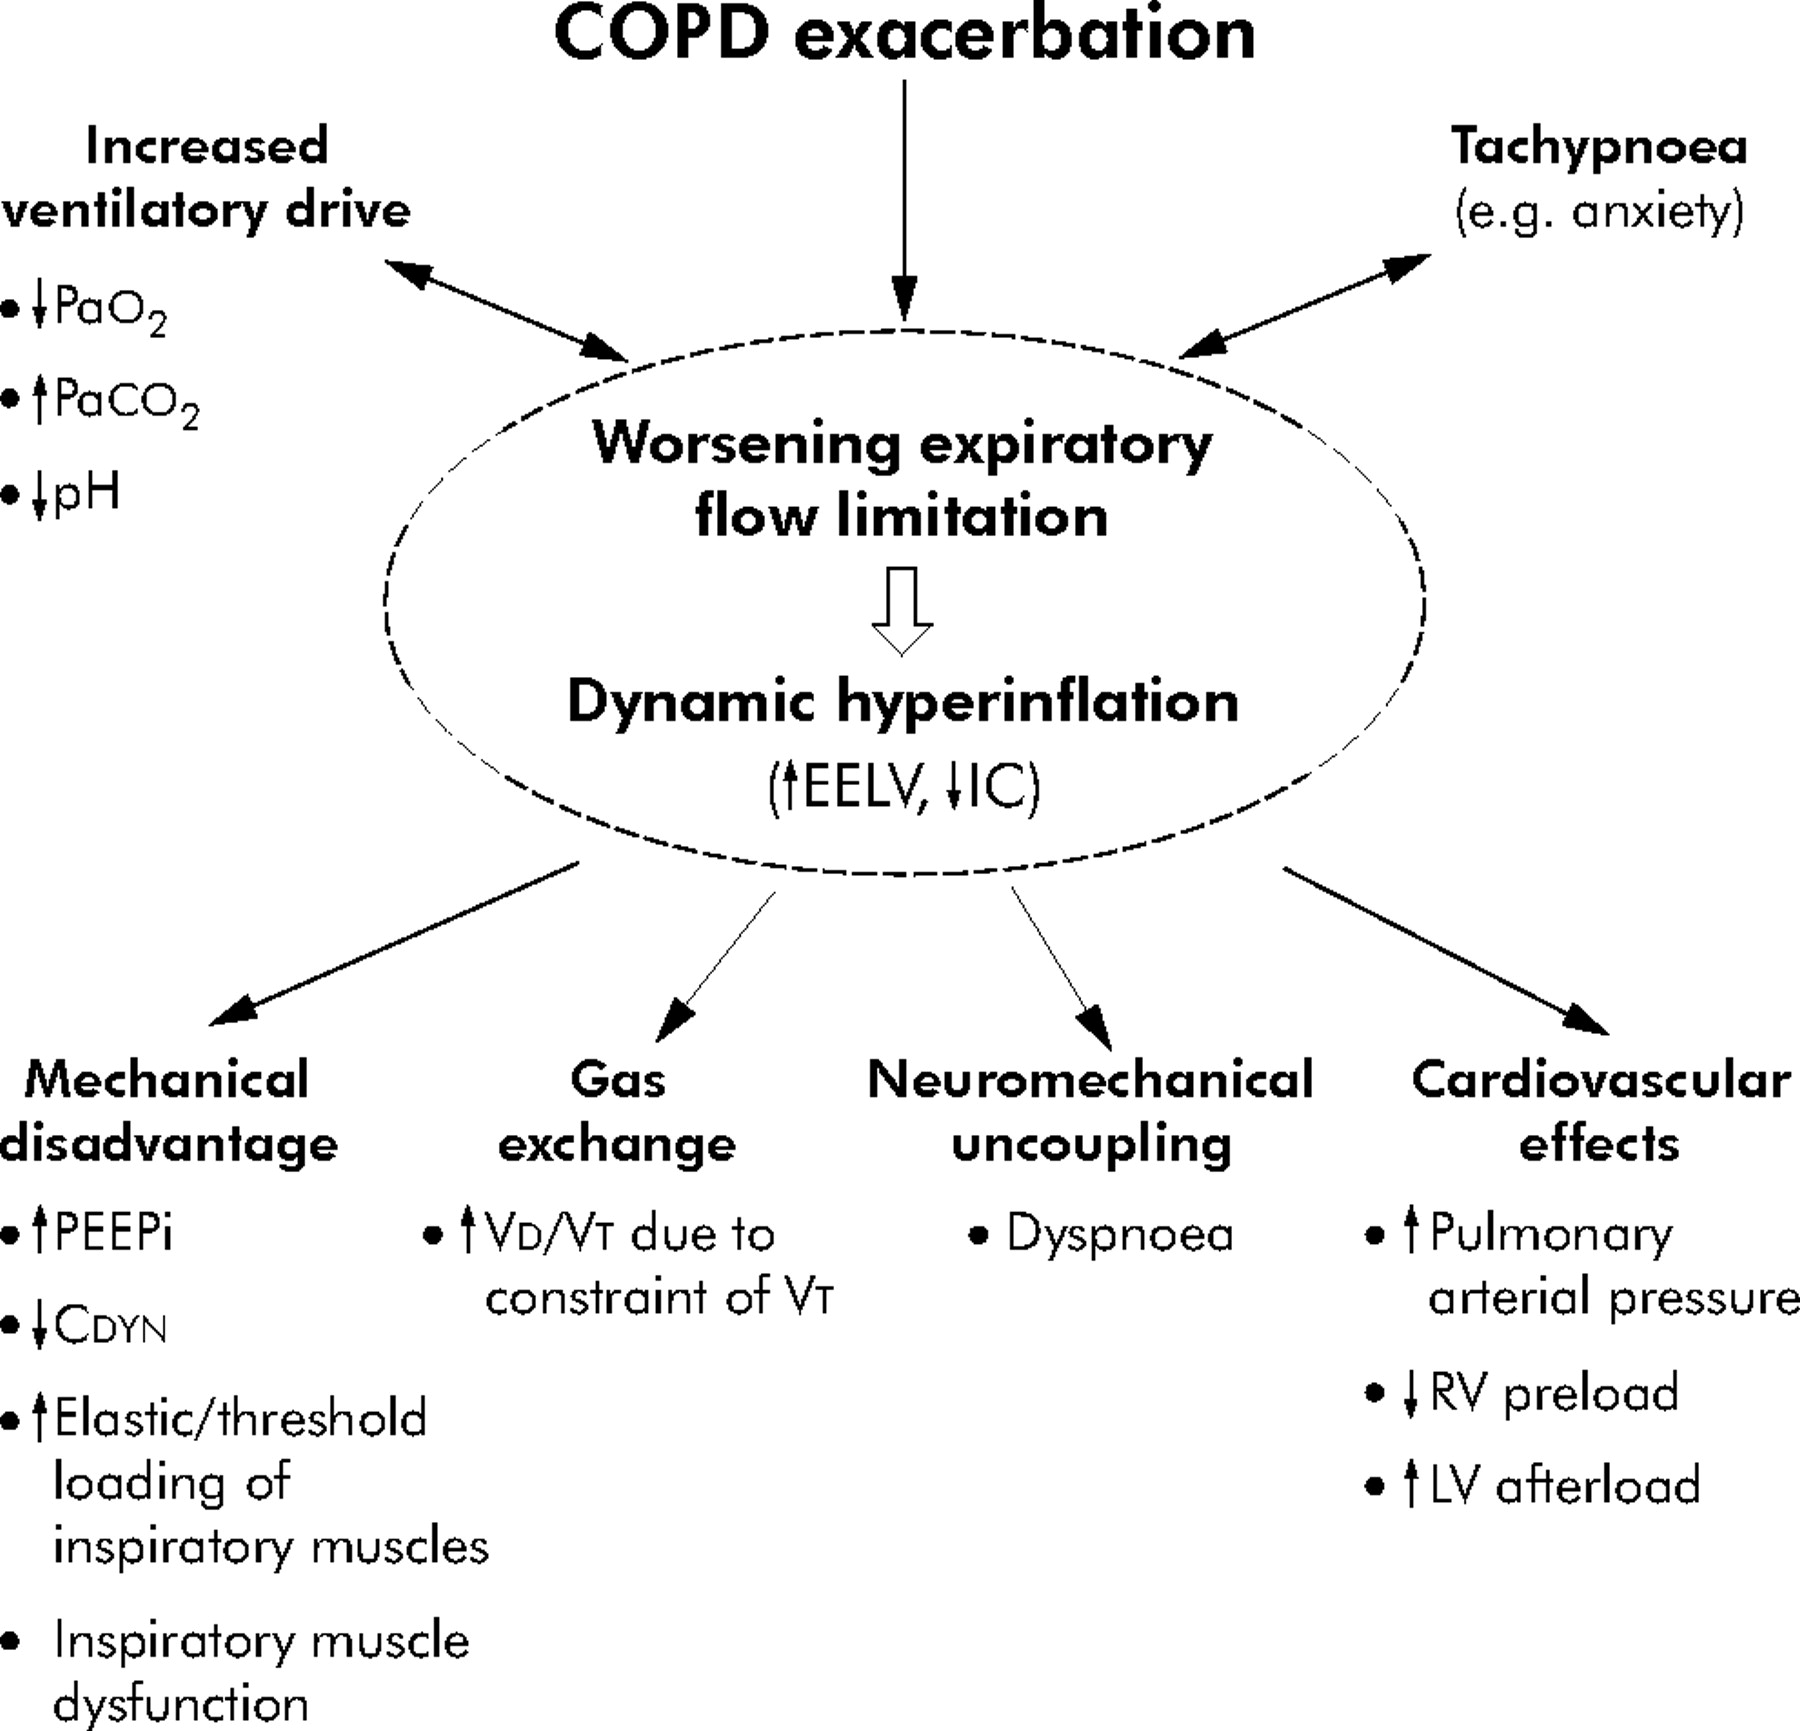 pathophysiology copd Prevention or lowering the risk factors for chronic obstructive pulmonary disease includes avoiding the causes and irritants (for example, smoking) or vaccines that protect the lungs from infection (for example, the flu and pneumococcal vaccines).